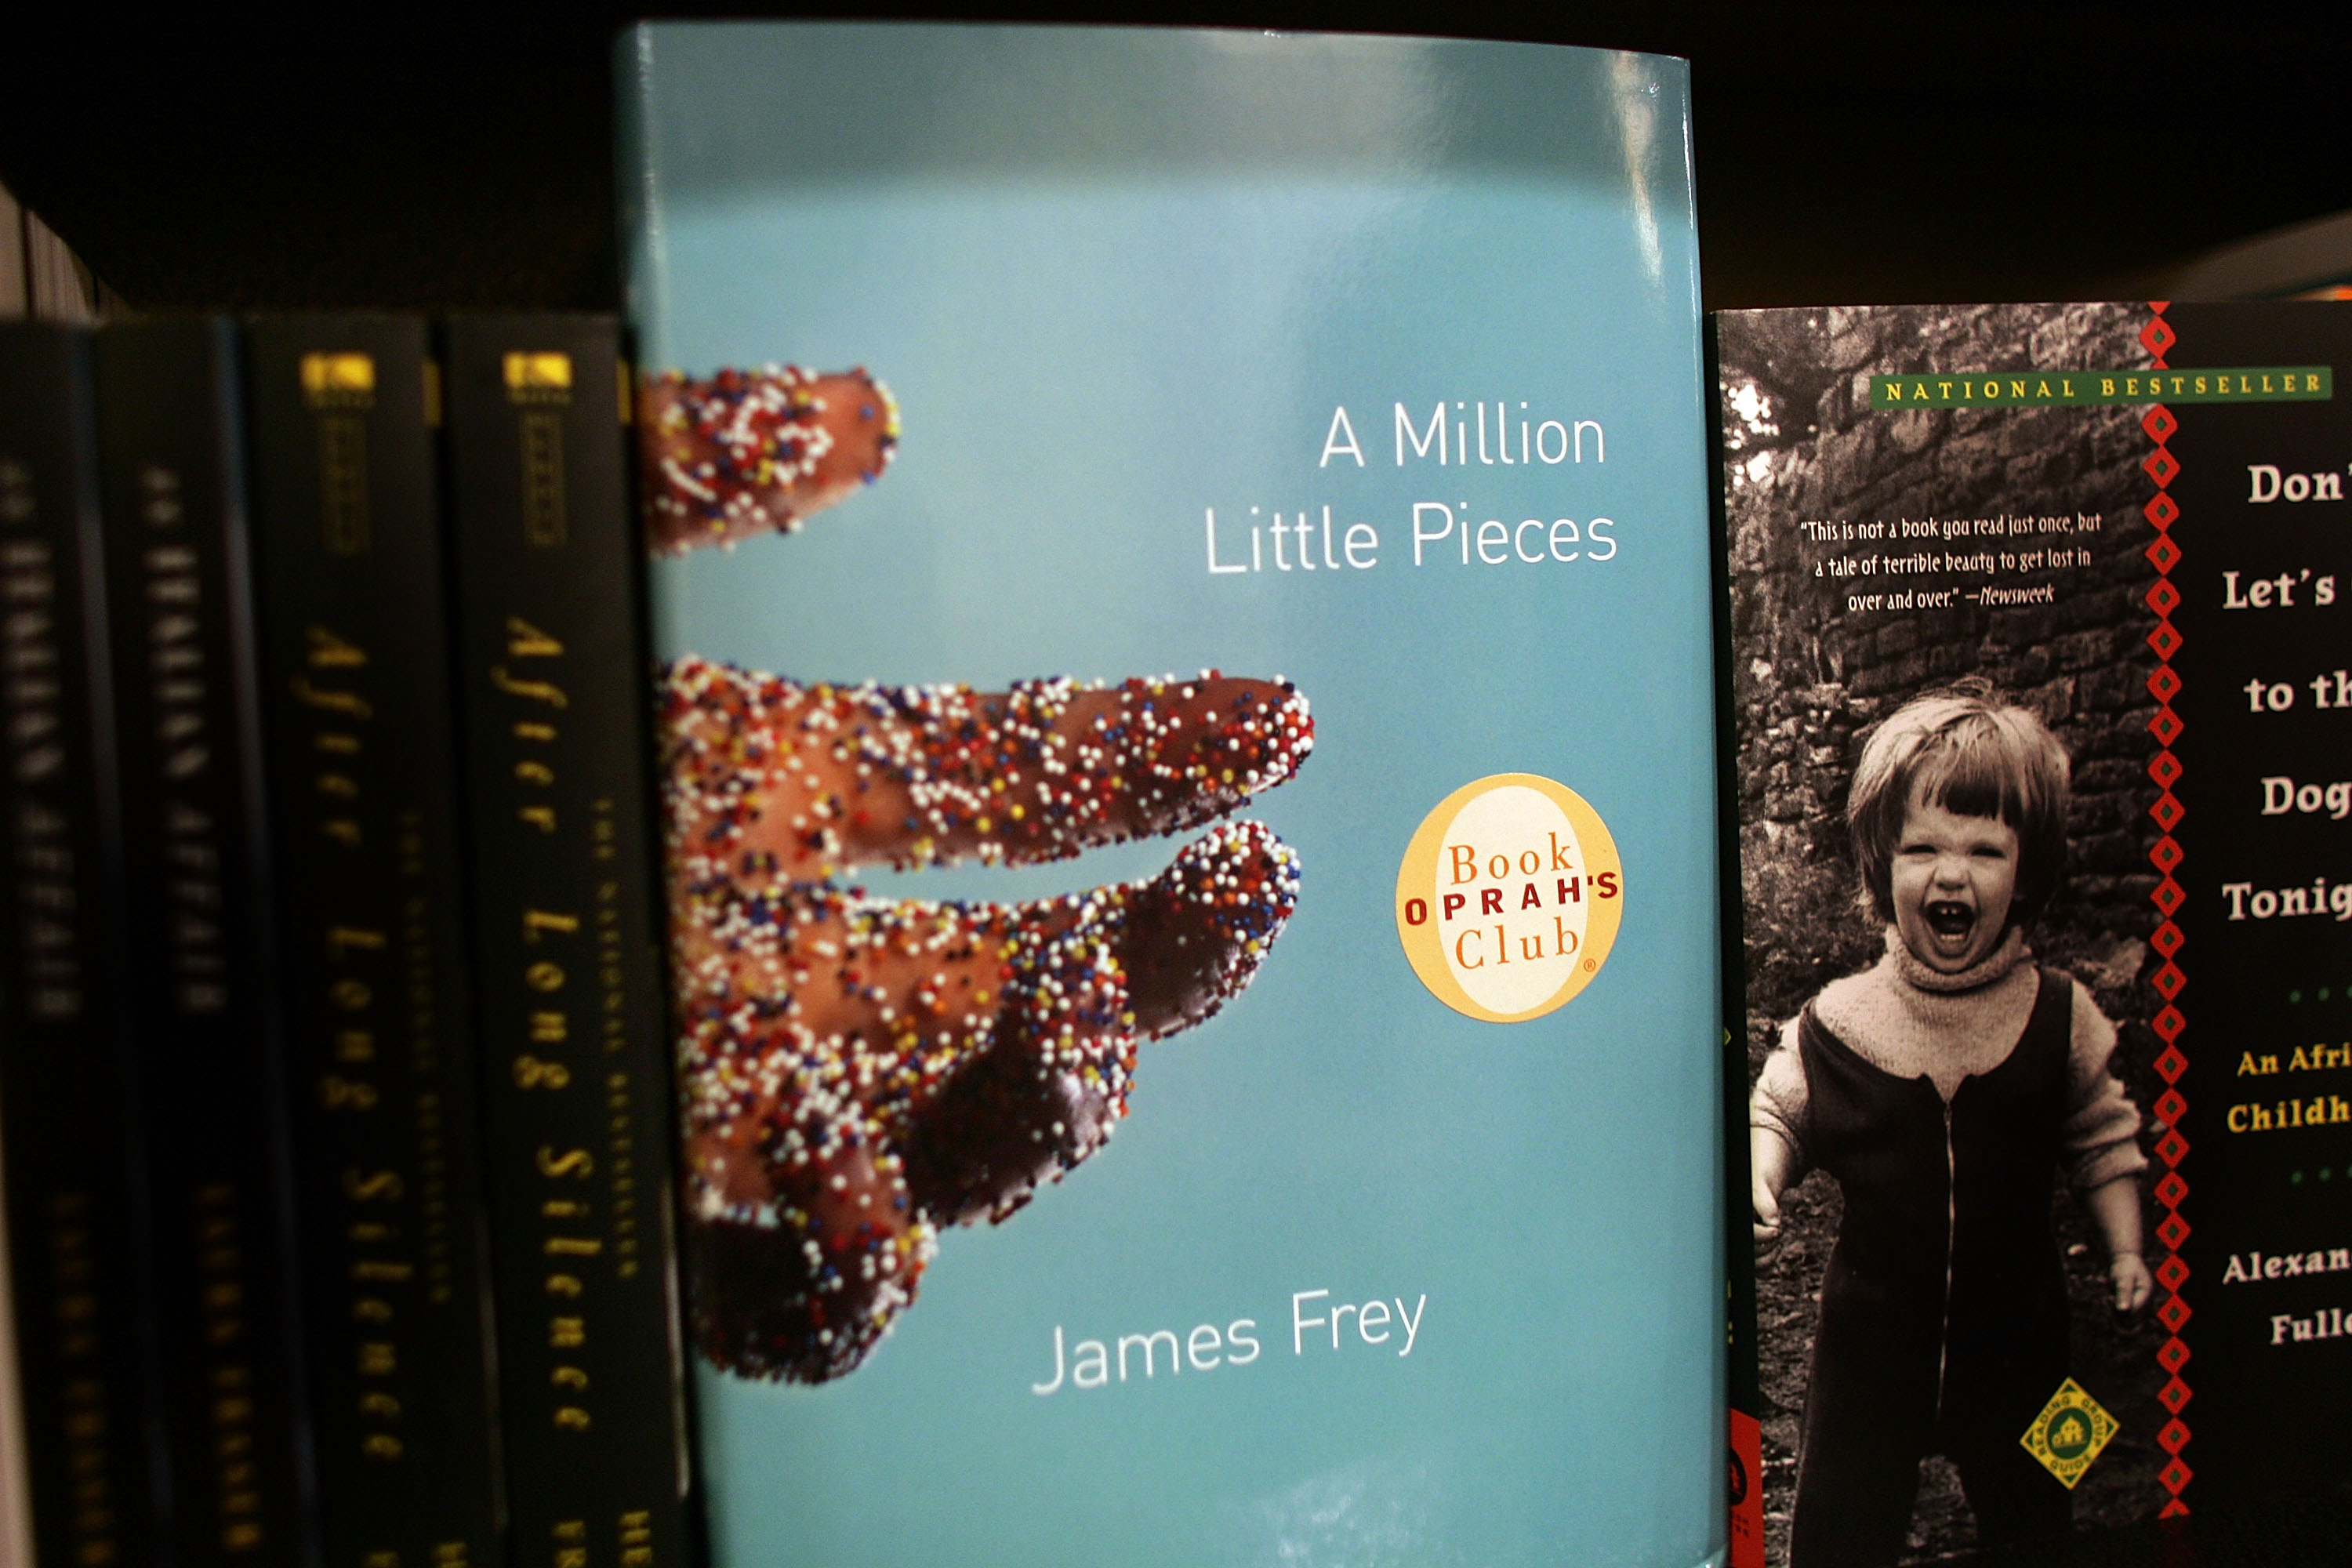 James frey a million little pieces essay   Coursework Help The Bad Seed  Battle for the Heavens available now on Amazon  Barnes and  Noble